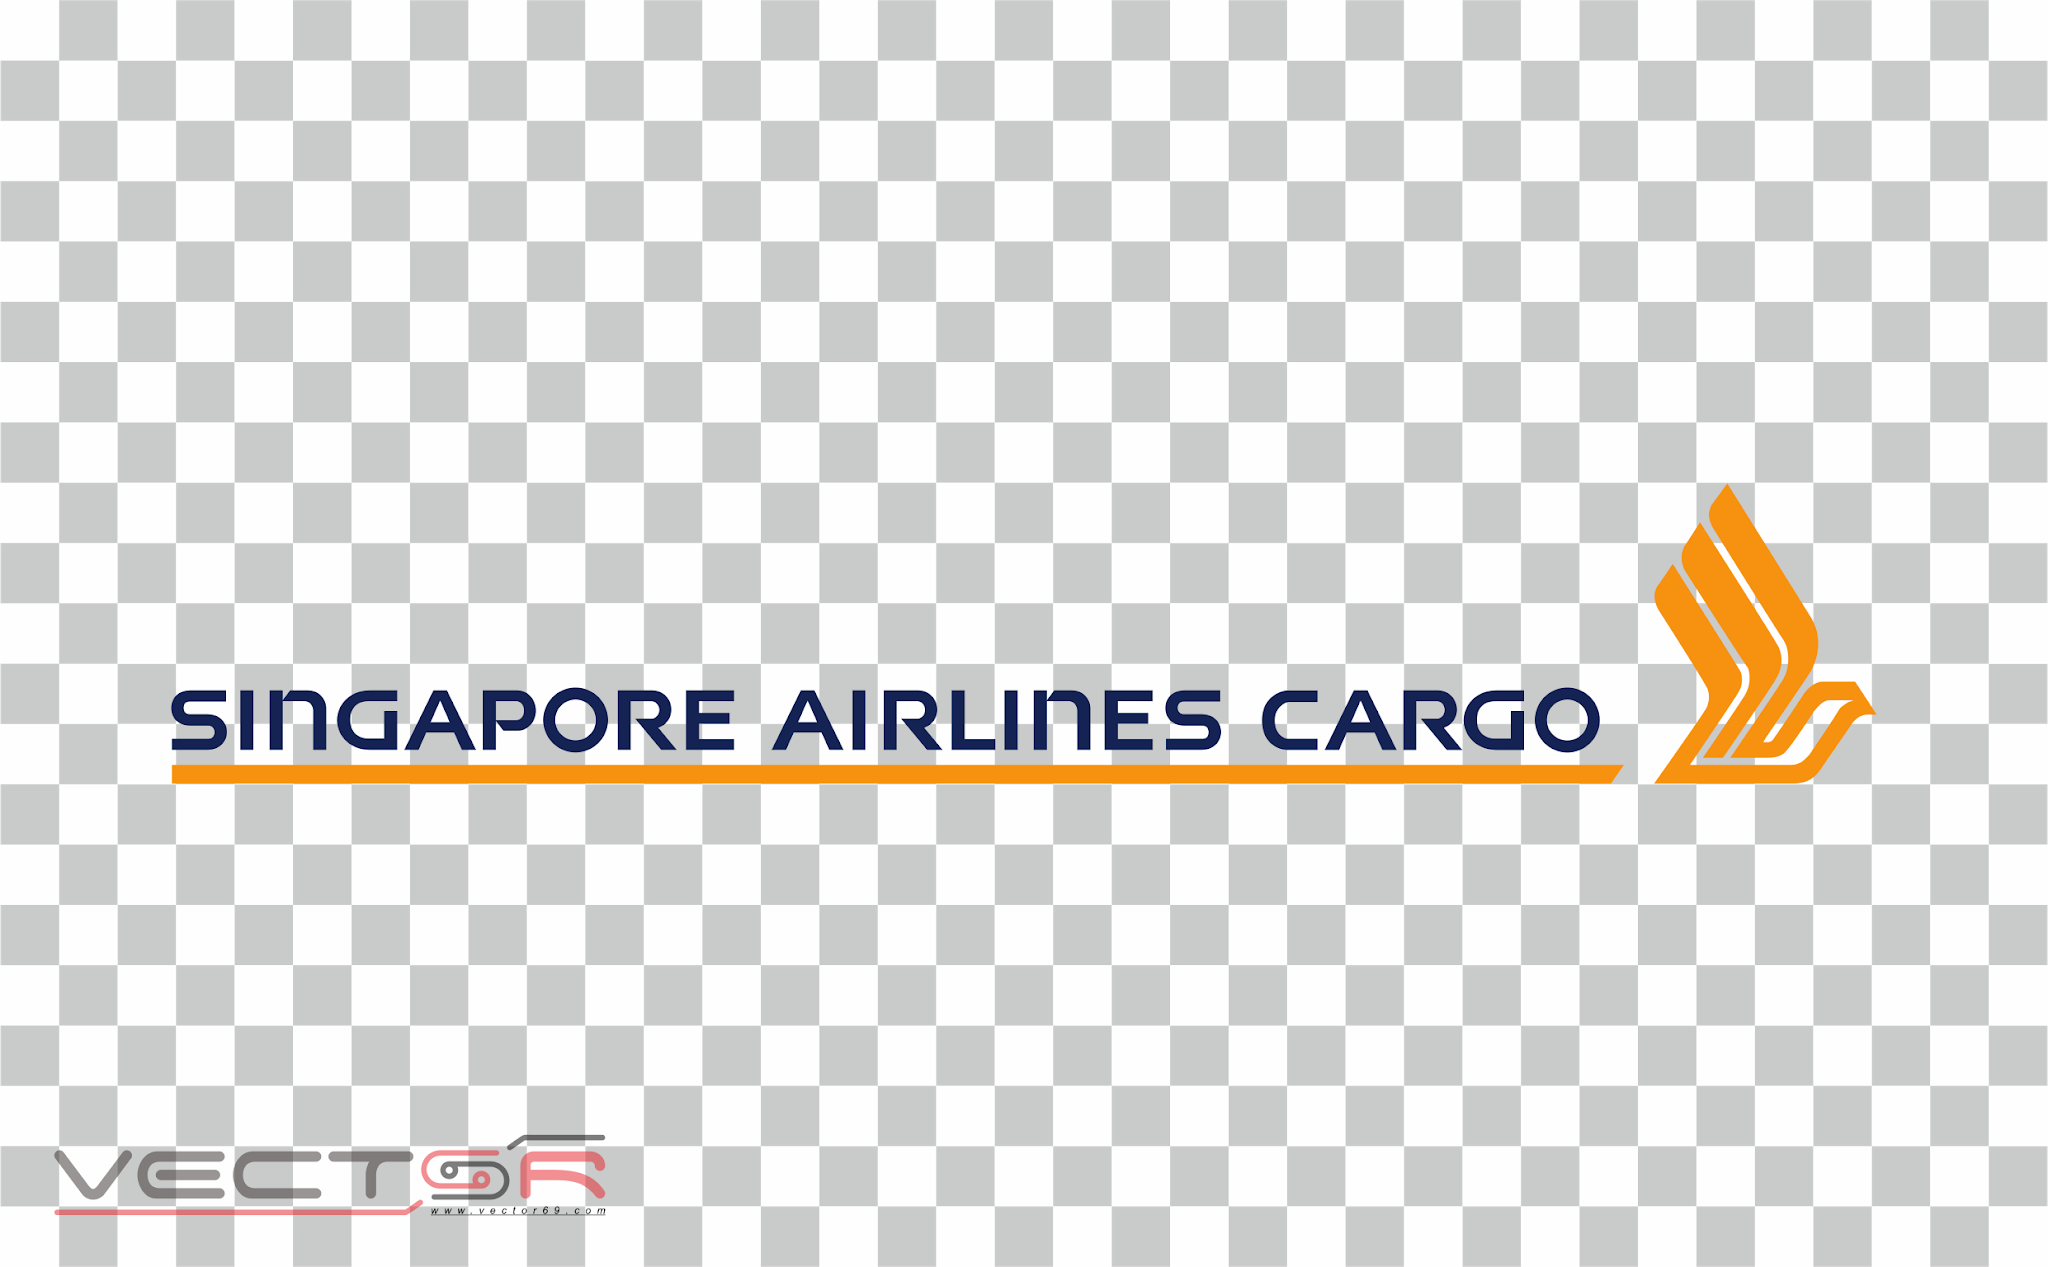 Singapore Airlines Cargo Logo - Download .PNG (Portable Network Graphics) Transparent Images